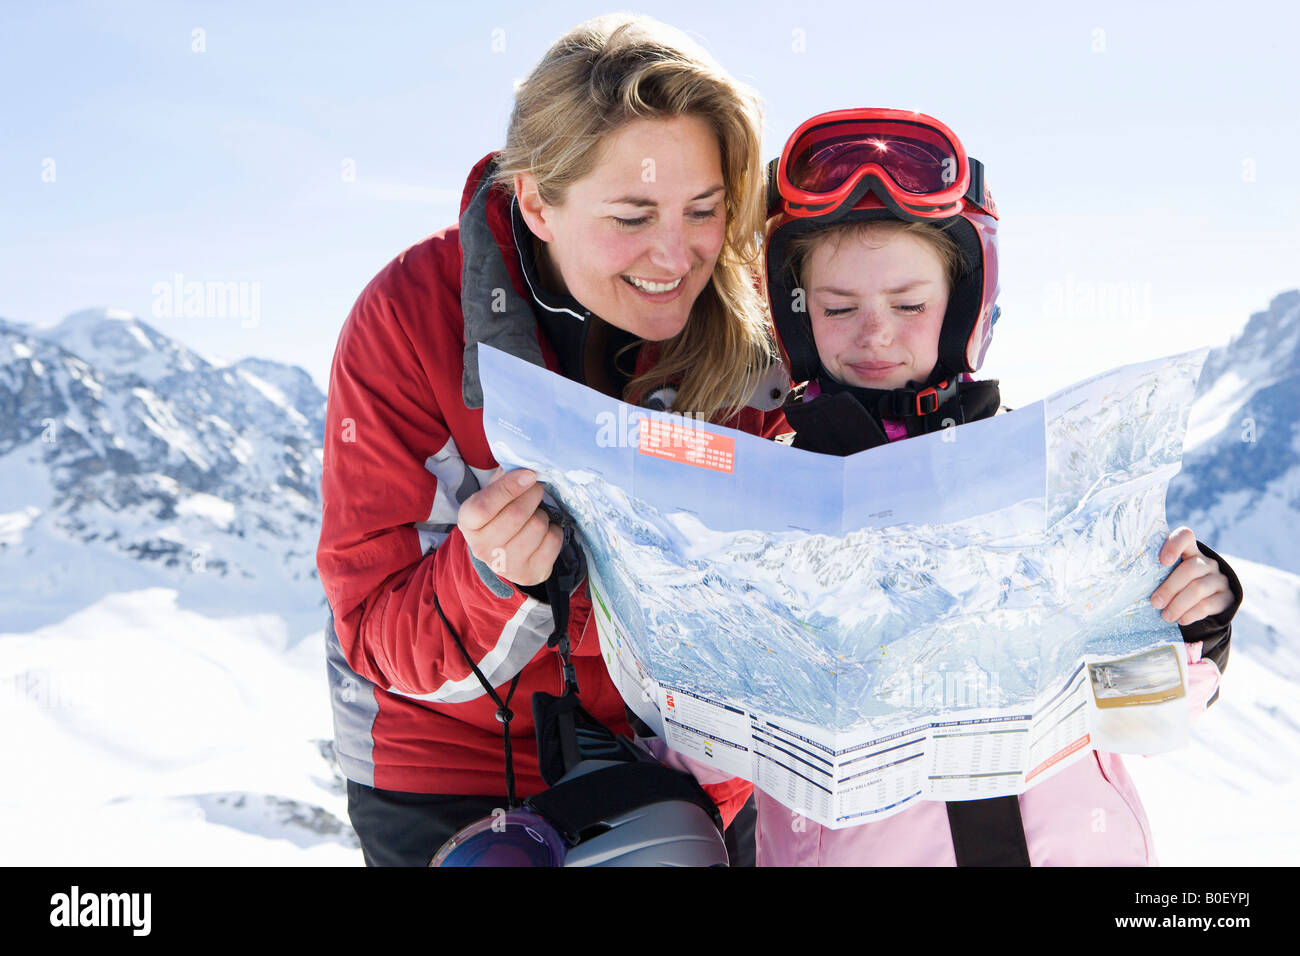 Mother and daughter reading piste map - Stock Image